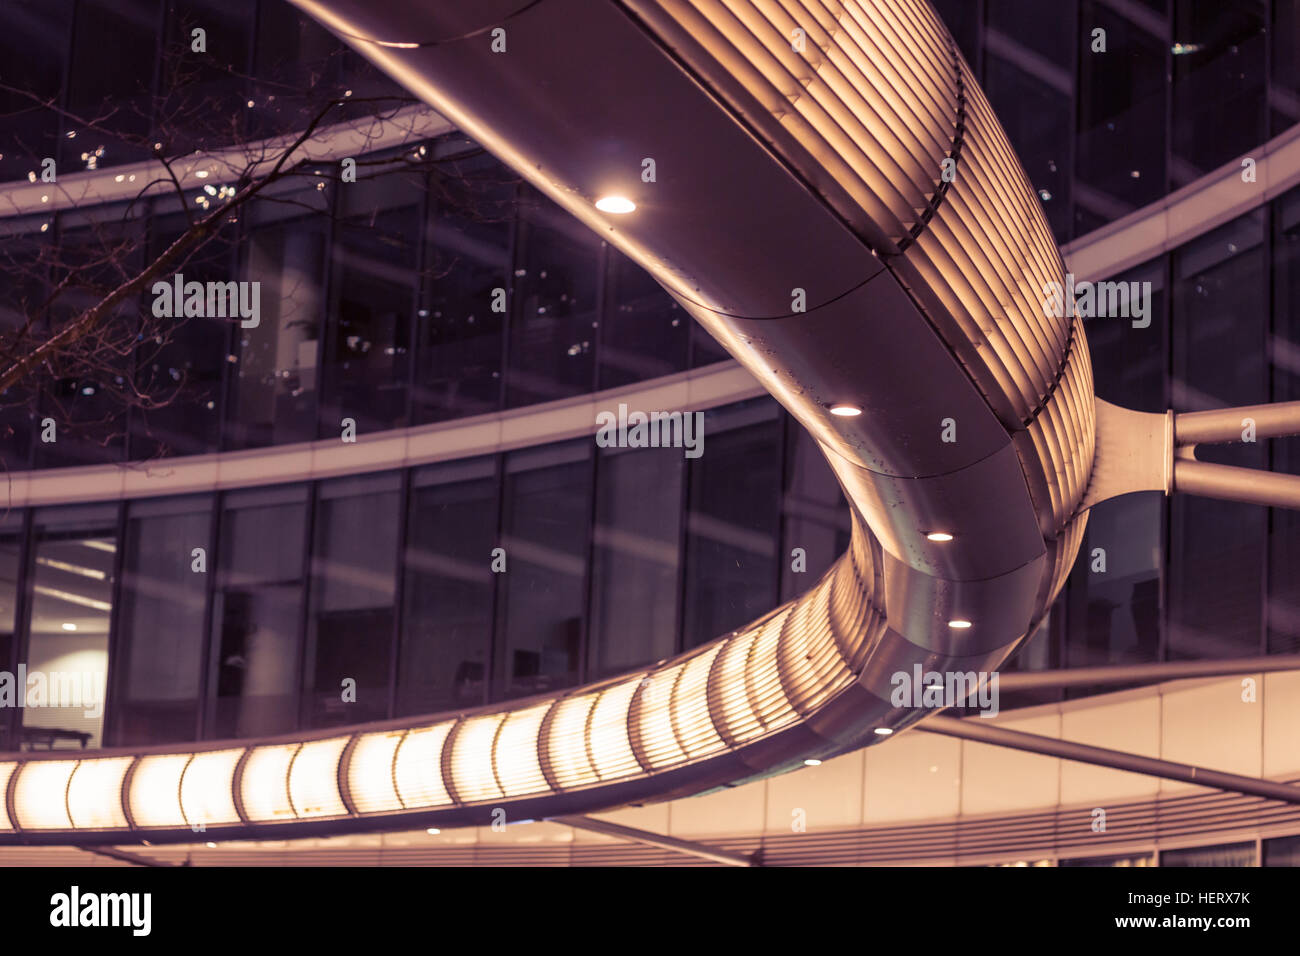 Modern business office building architecture. - Stock Image